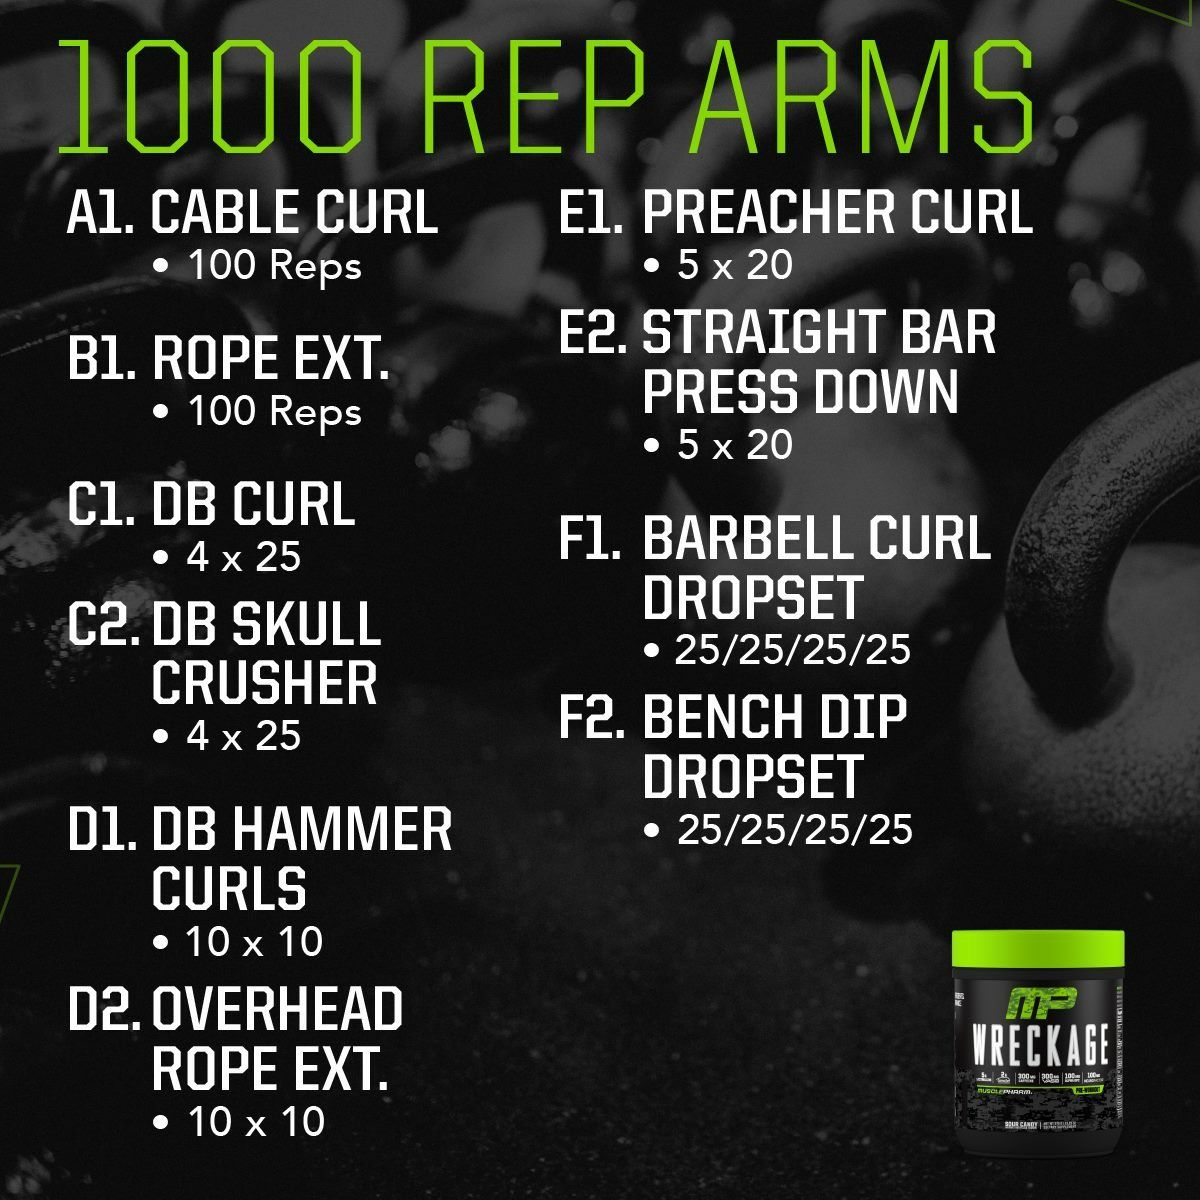 Pin By Joe On Fitness Ectomorph Workout Musclepharm Workouts Arm Workout